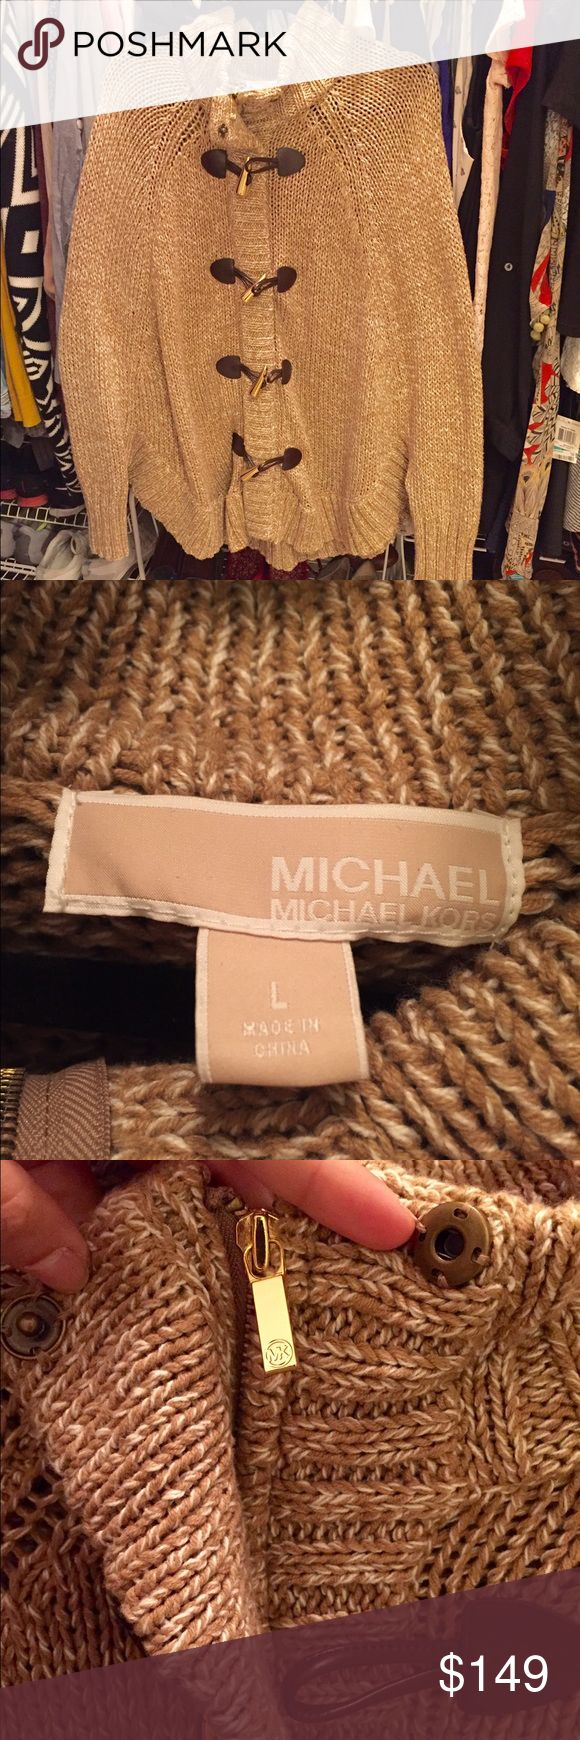 Michael Kors Poncho in Camel Very trendy, warm and comfortable poncho. Perfect to throw on over leggings and tall boots to make an effortlessly chic outfit! Michael Kors Sweaters Shrugs & Ponchos